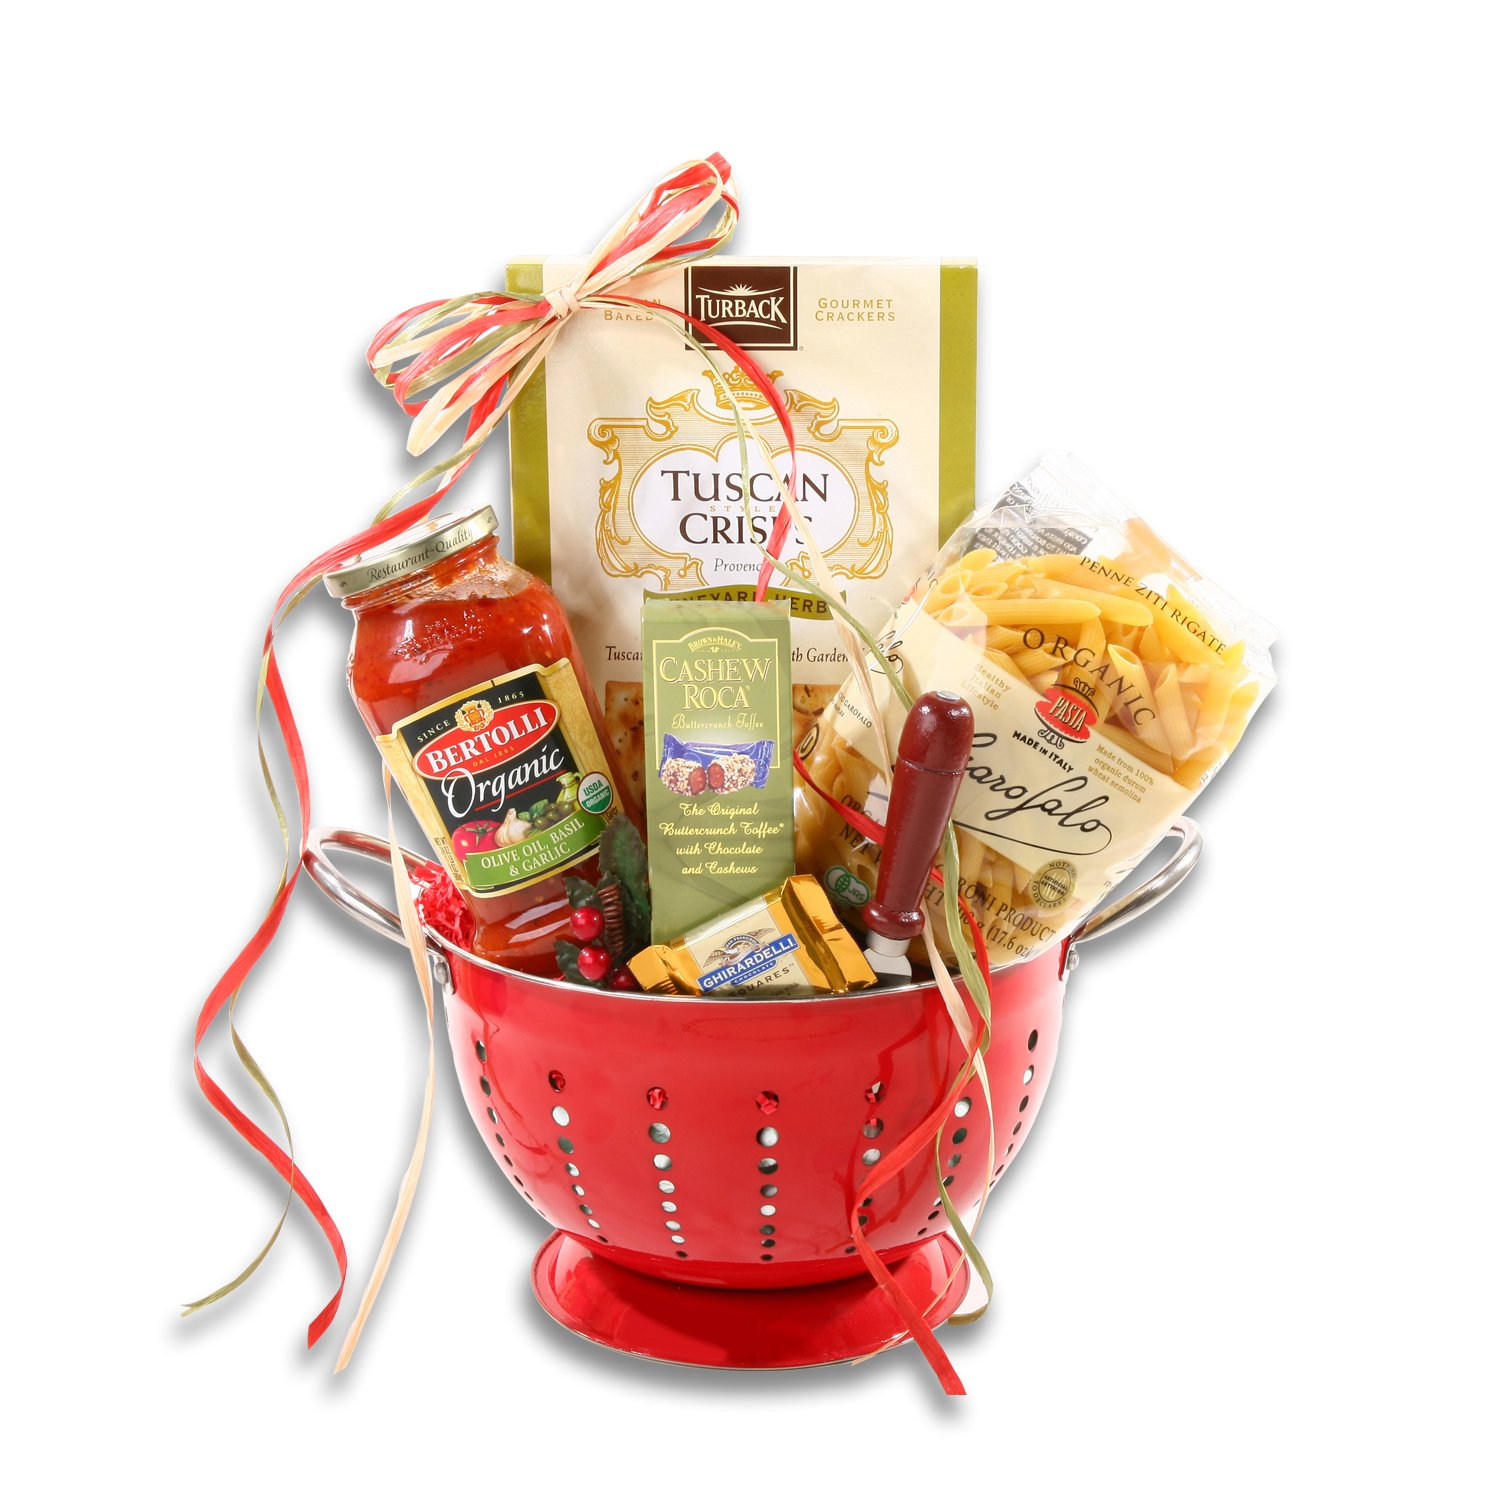 Dinner with Family Italian Food Gift Basket | Christmas Gift Idea